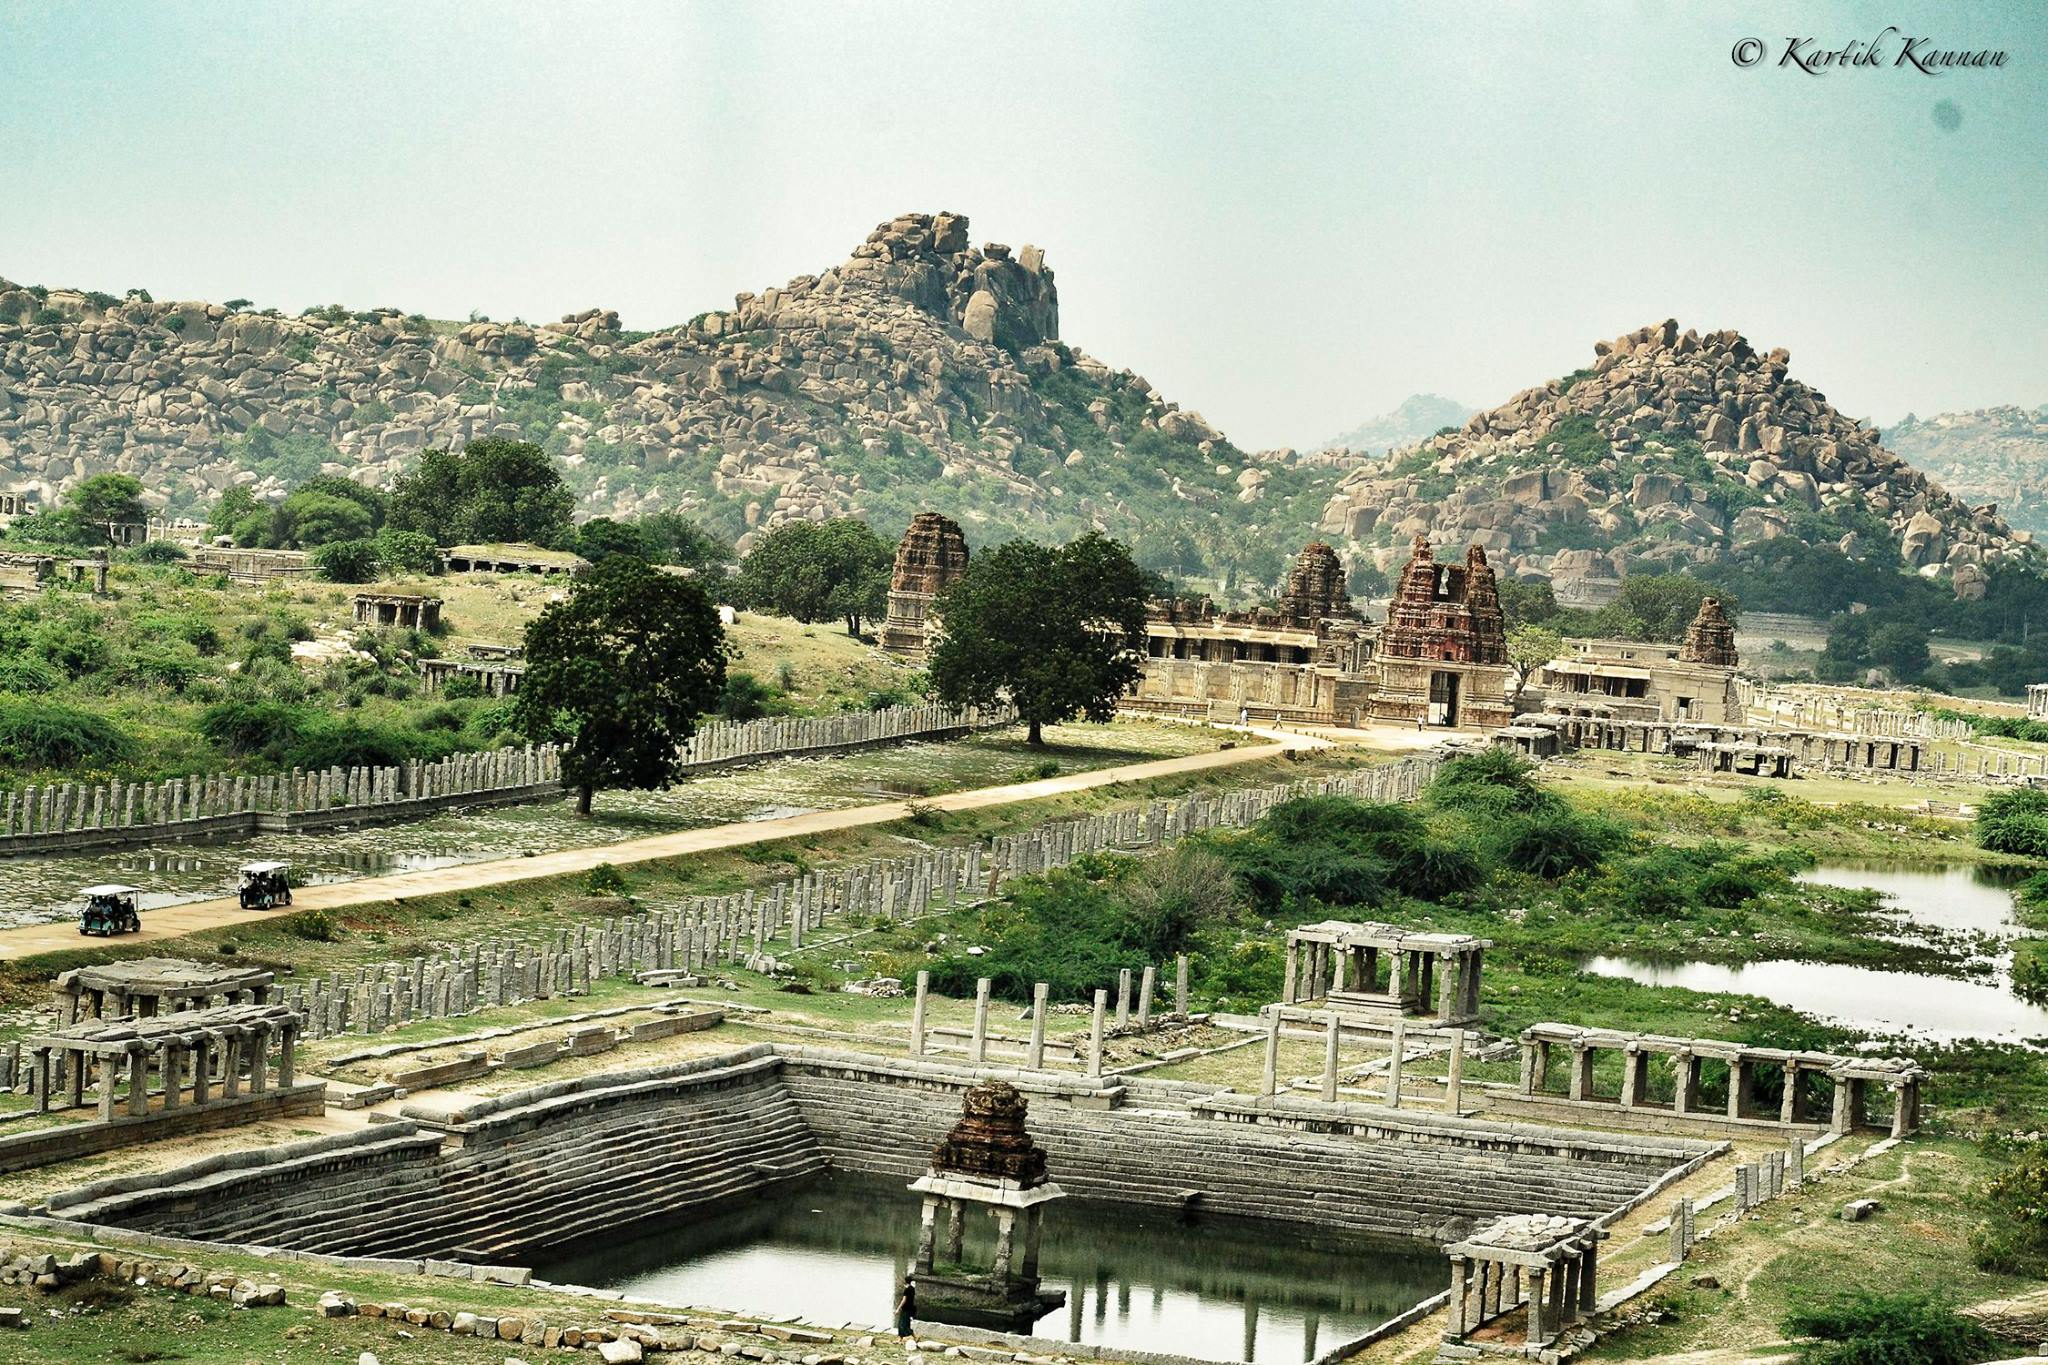 Panoramic View of the Vitthala Temple